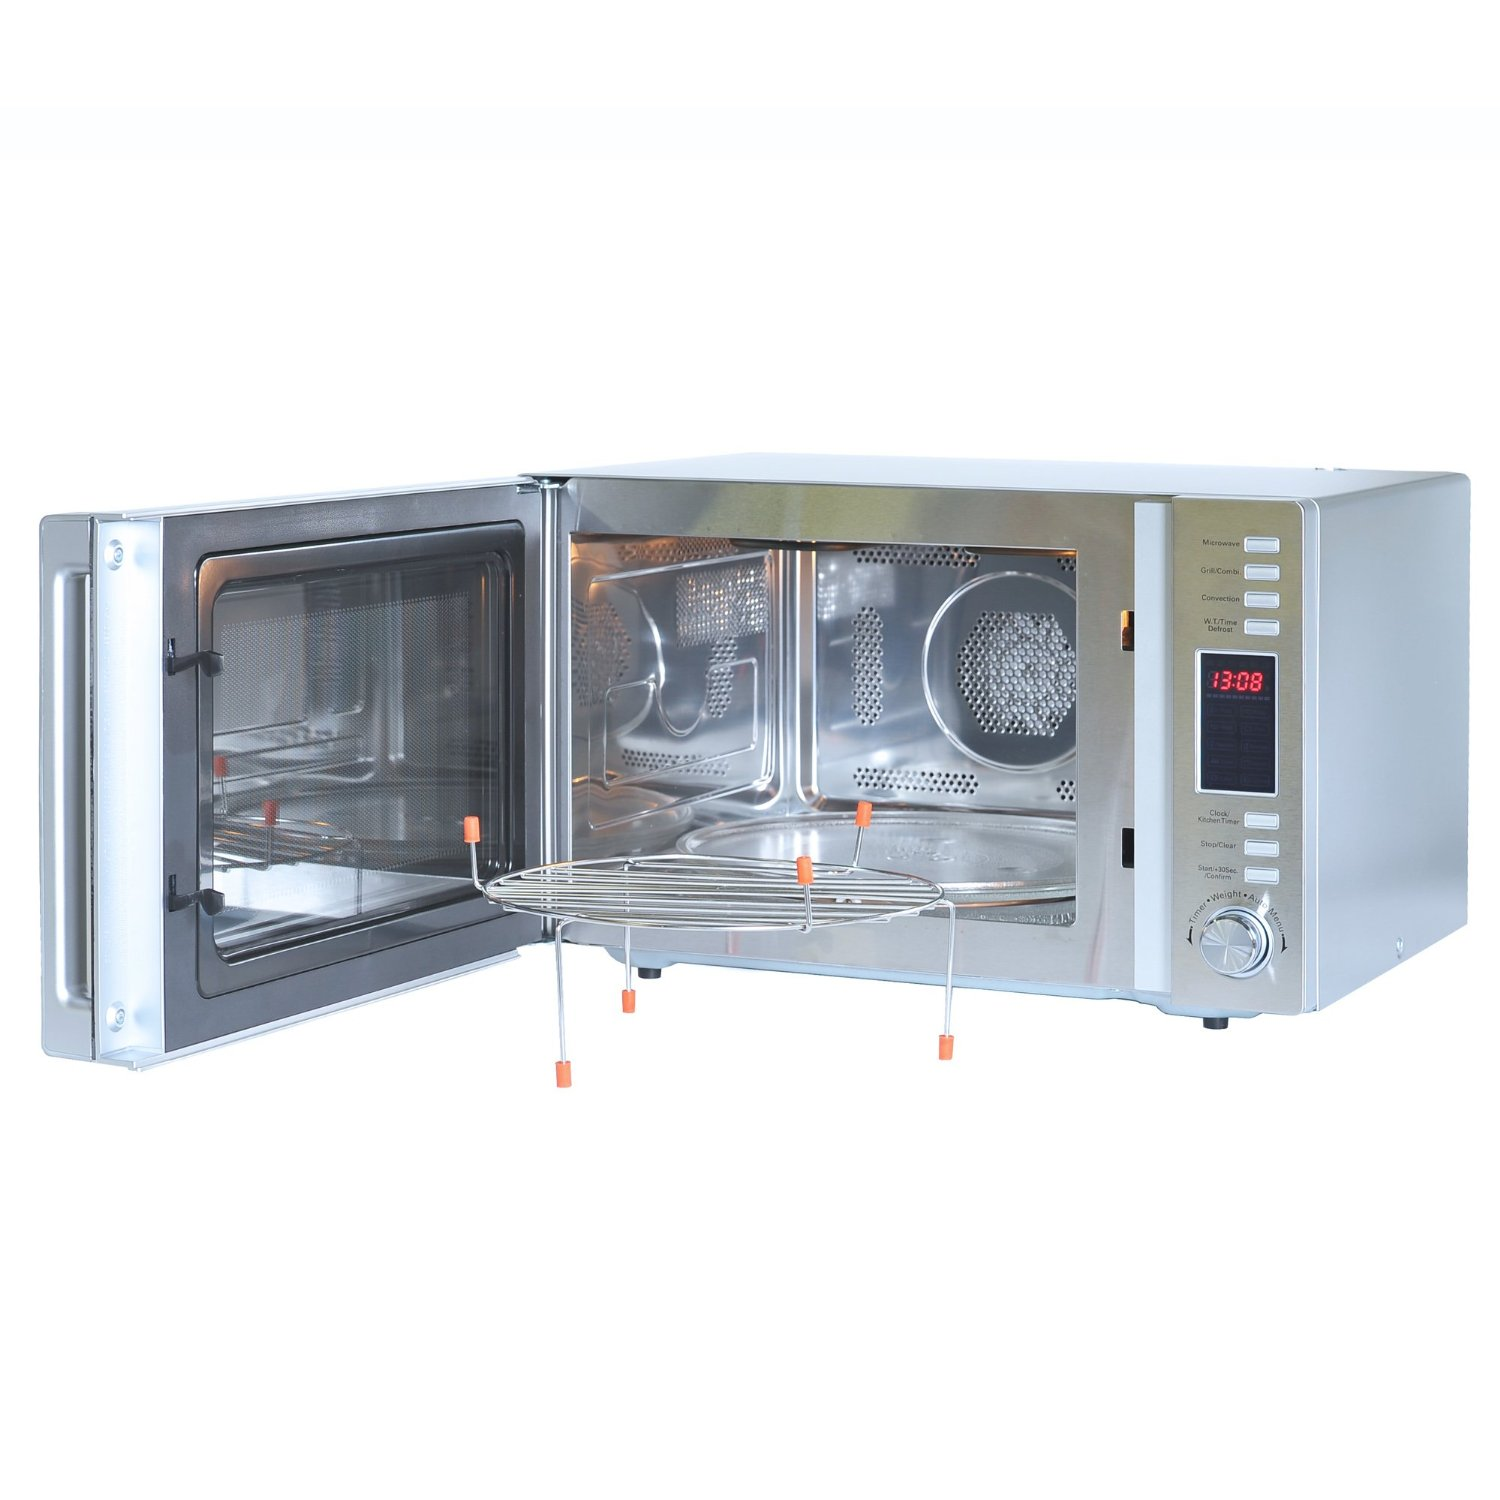 Igenix IG3091 30 Litre Family Size Digital Combination Microwave-Stainless Steel. [PIK.IG3091]